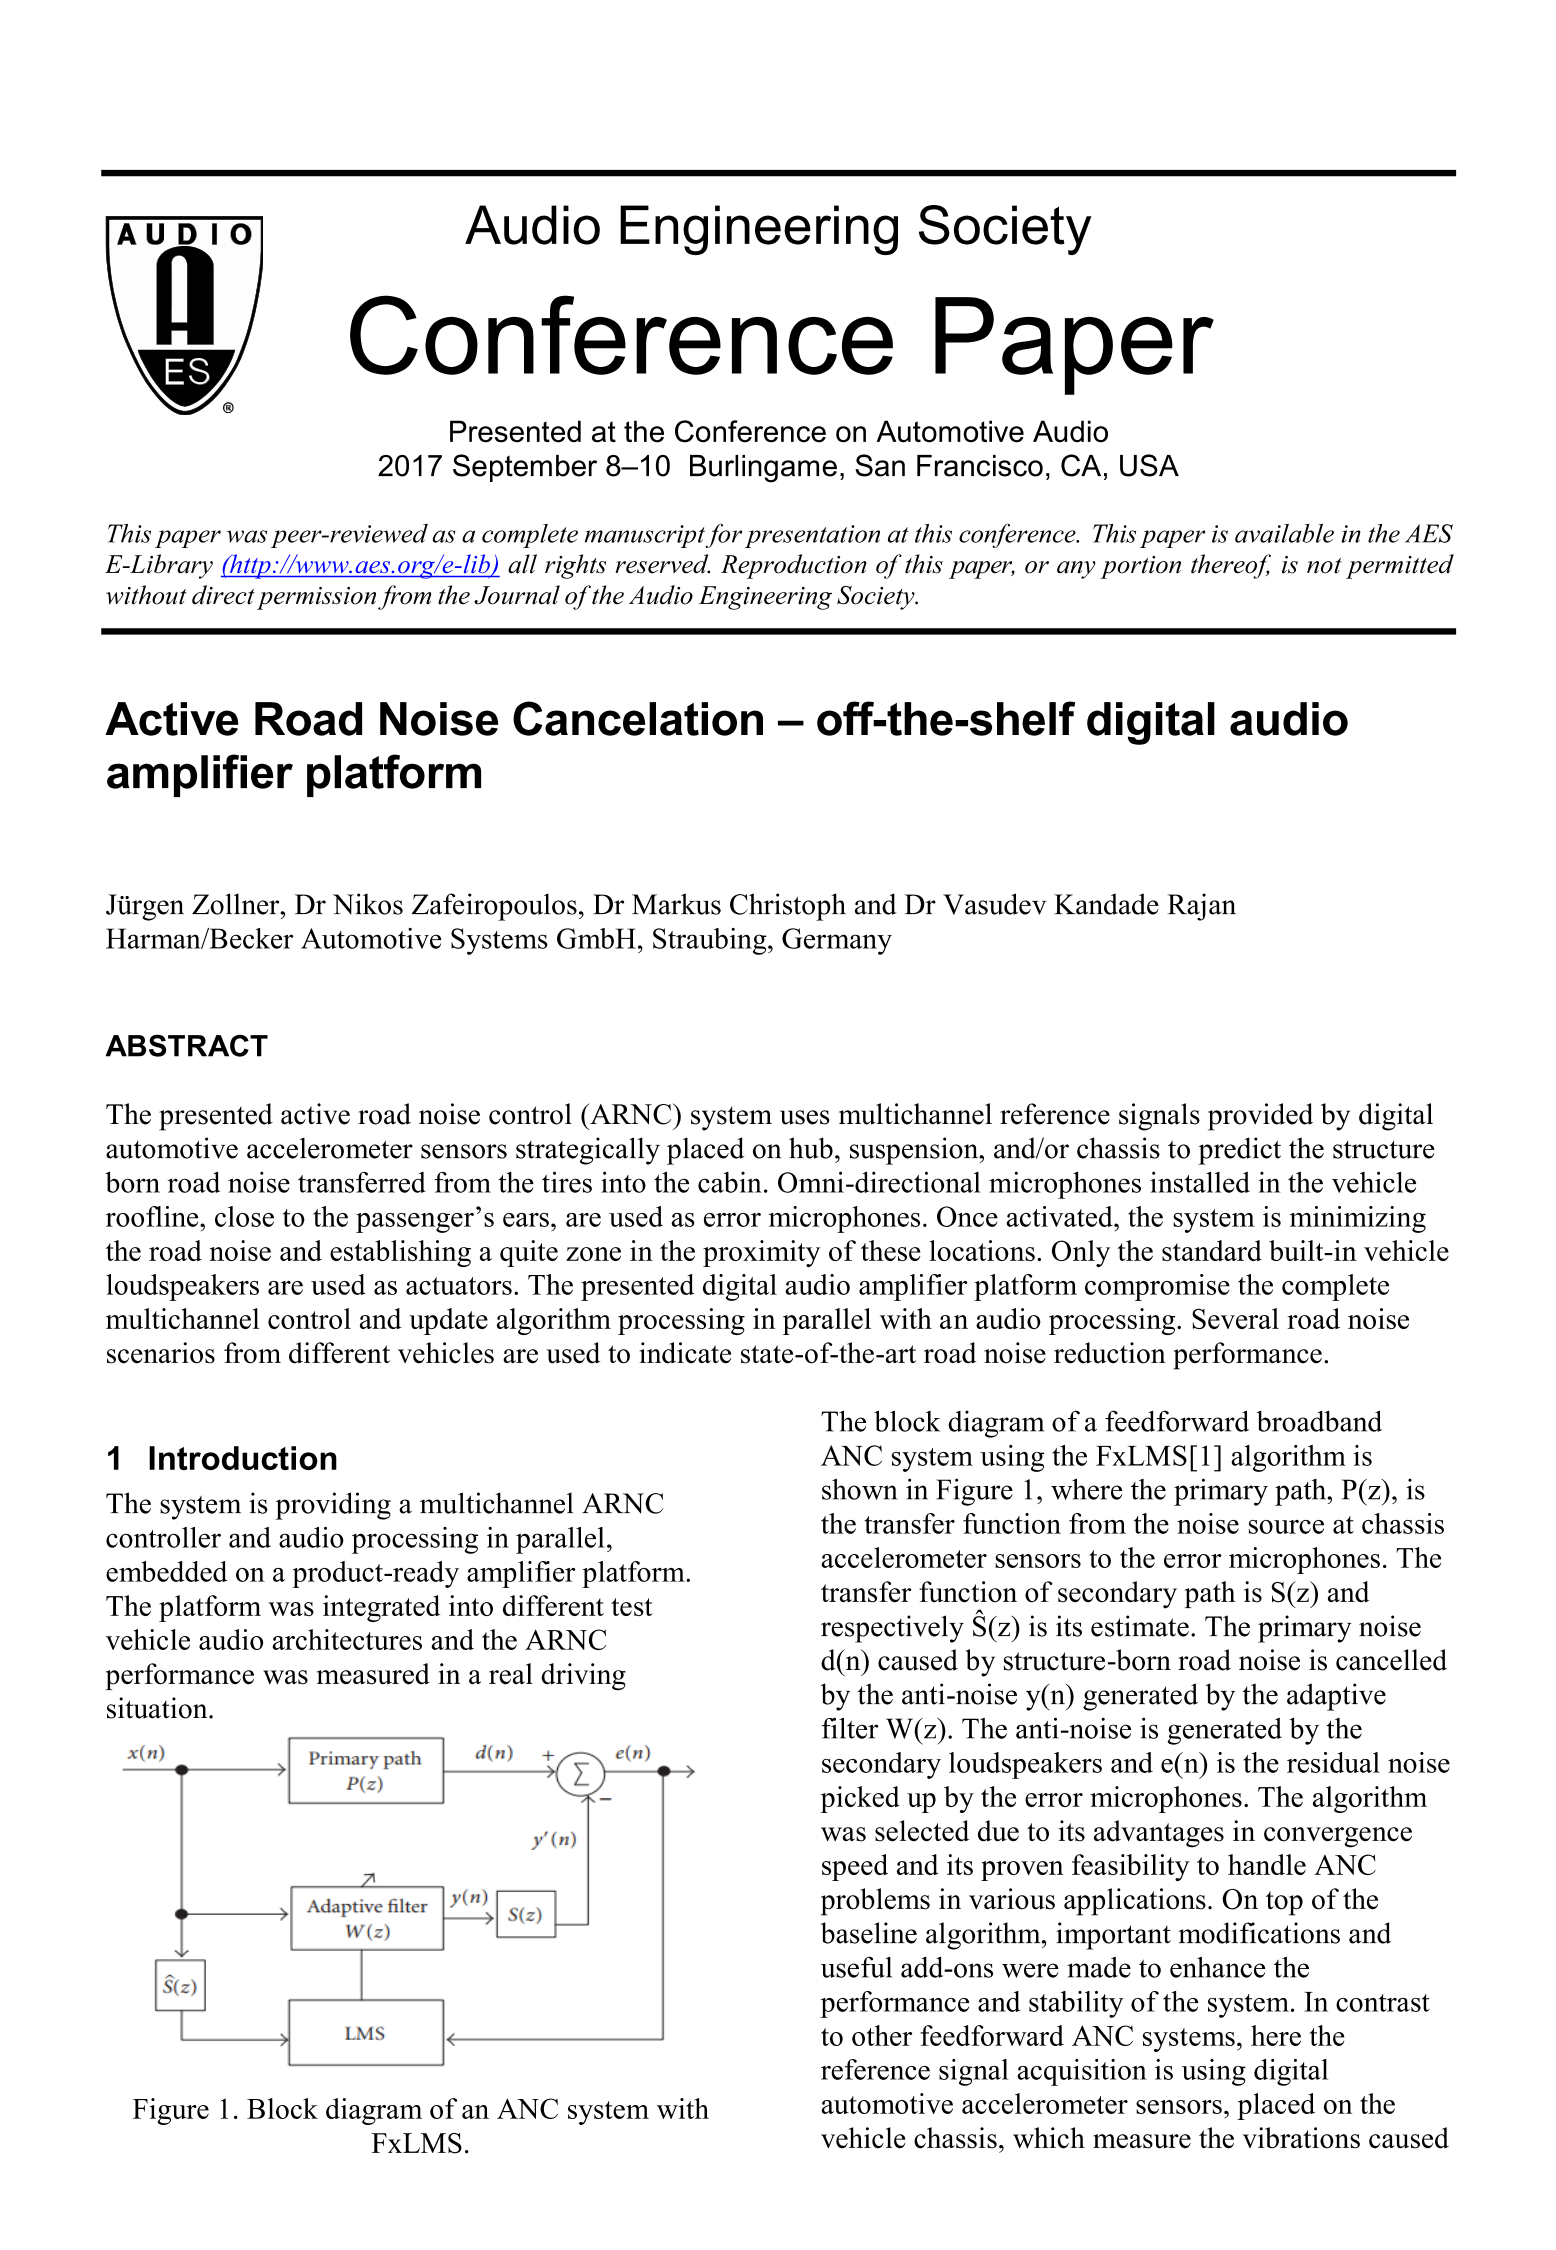 AES E-Library » Active Road Noise Cancelation—Off-the-Shelf Digital